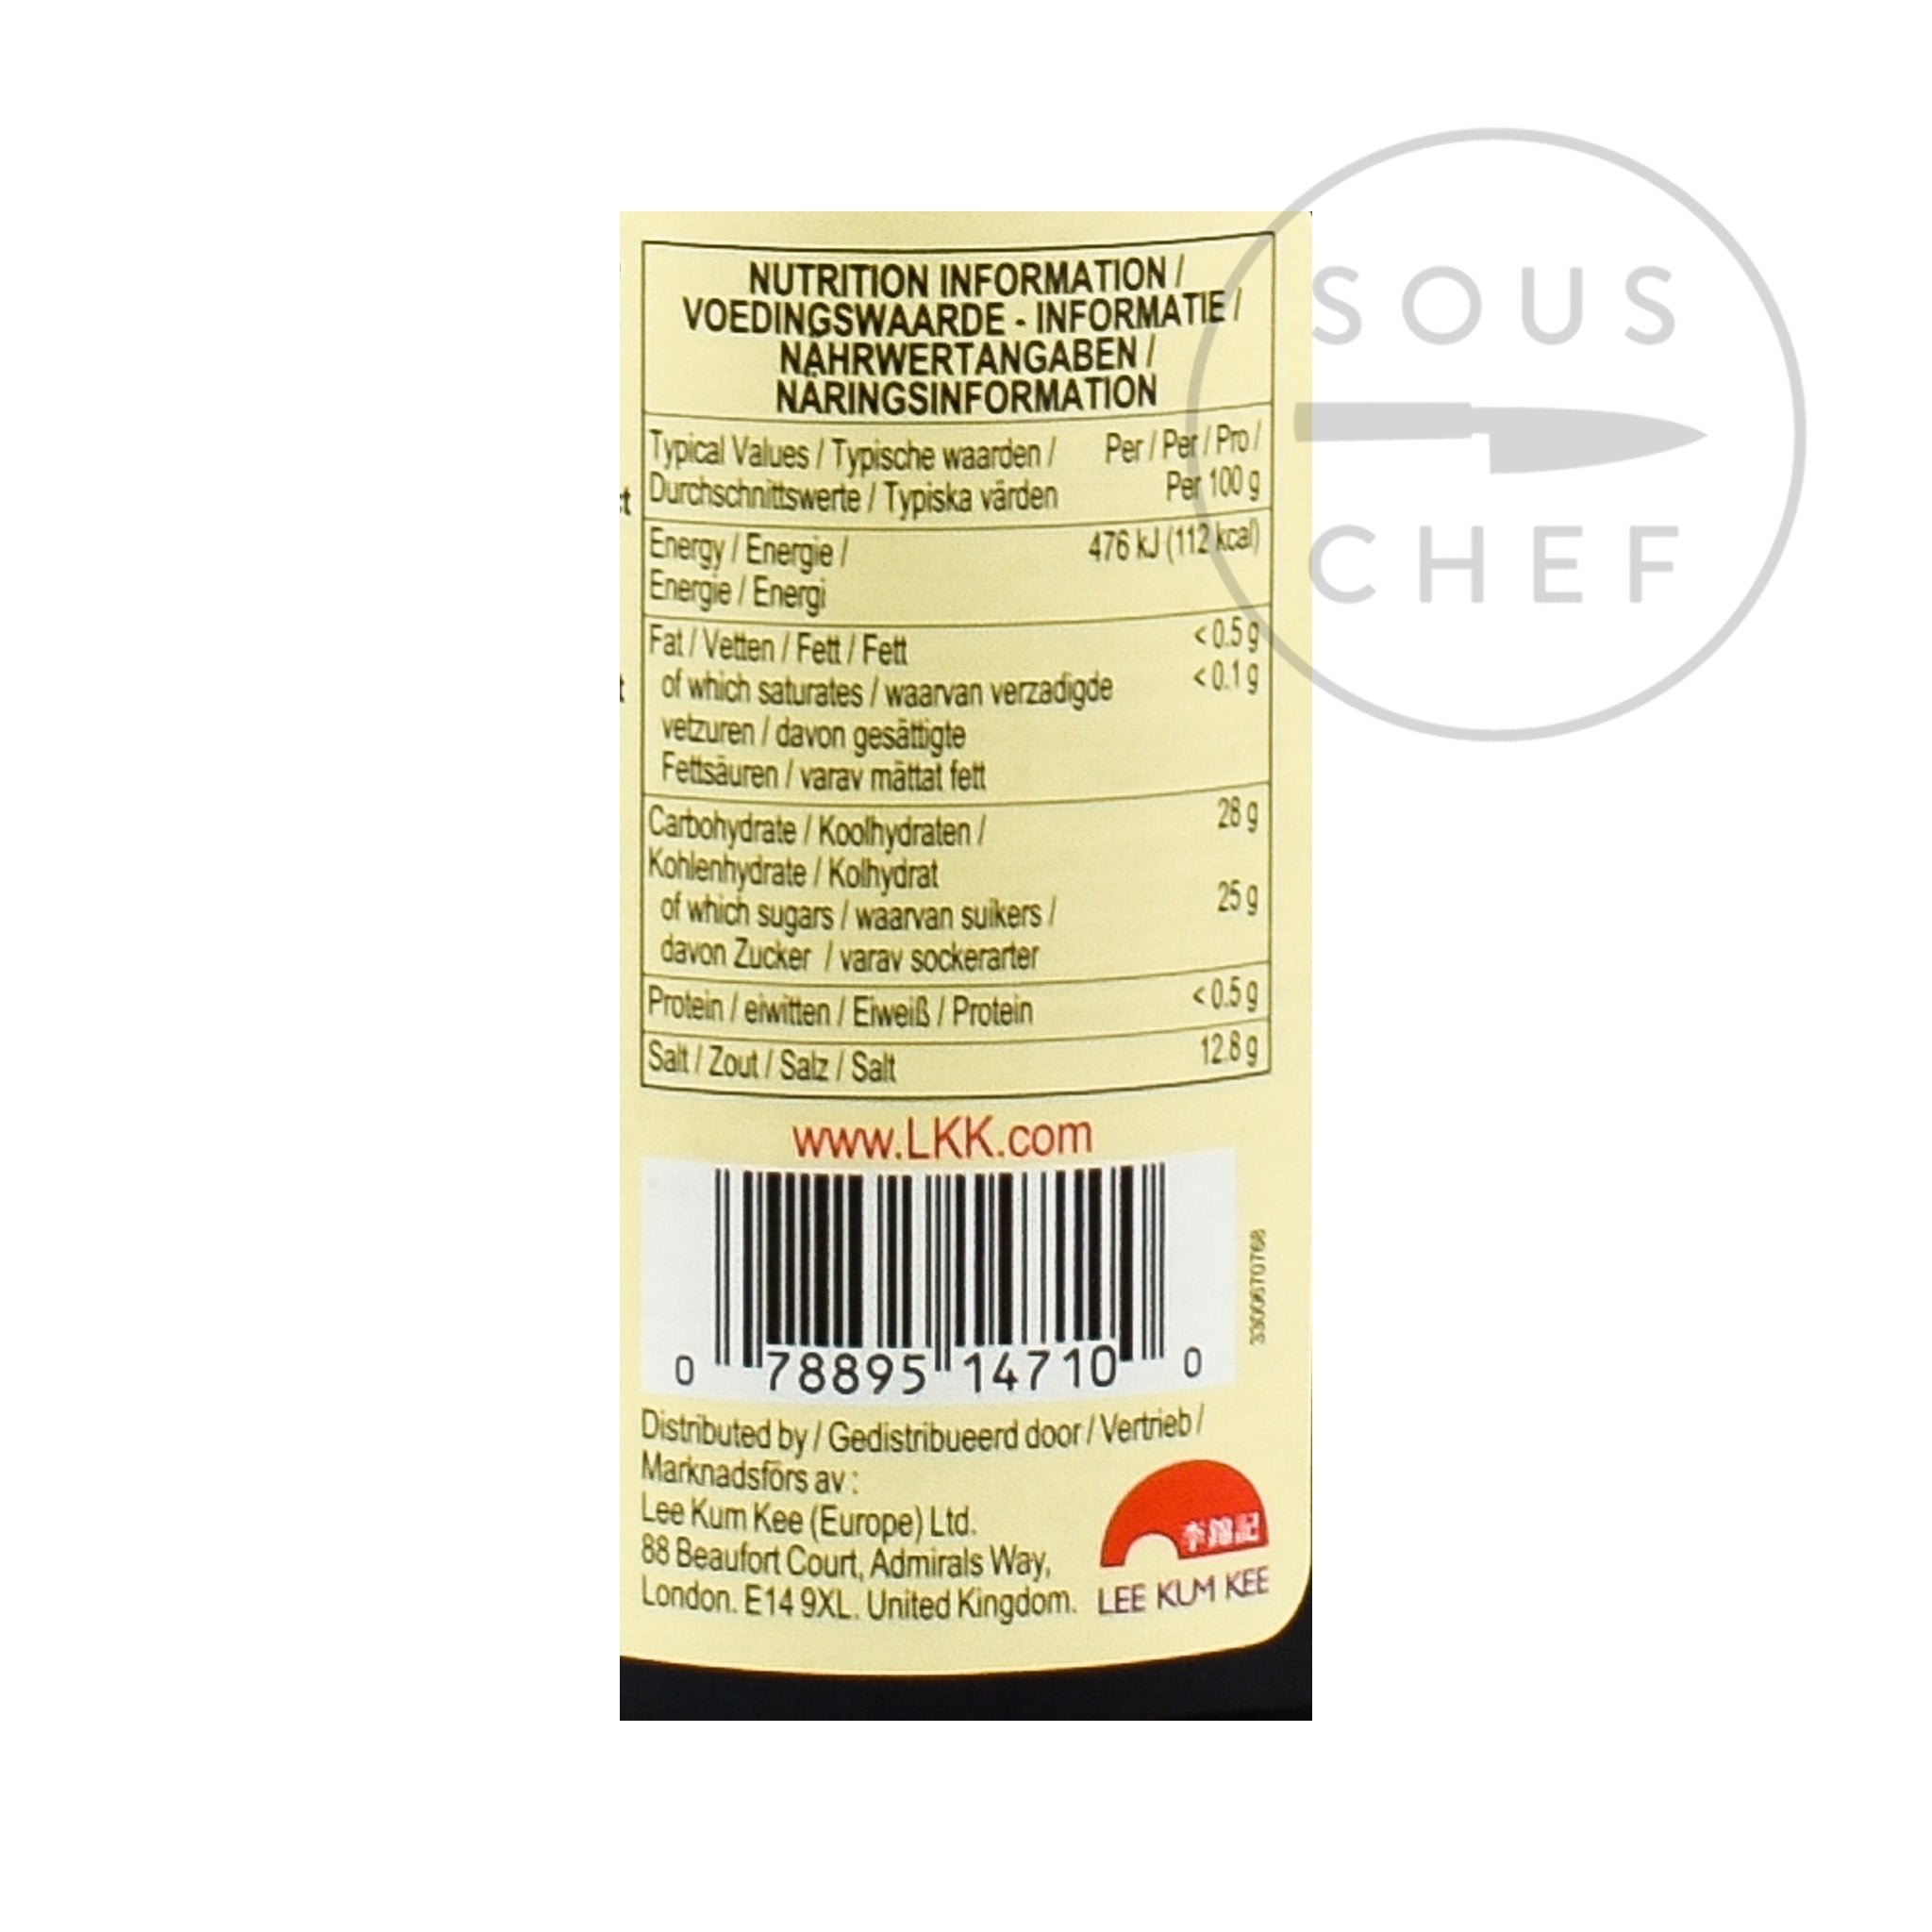 Lee Kum Kee Gluten-Free Oyster Sauce 510g Ingredients Sauces & Condiments Asian Sauces & Condiments Chinese Food